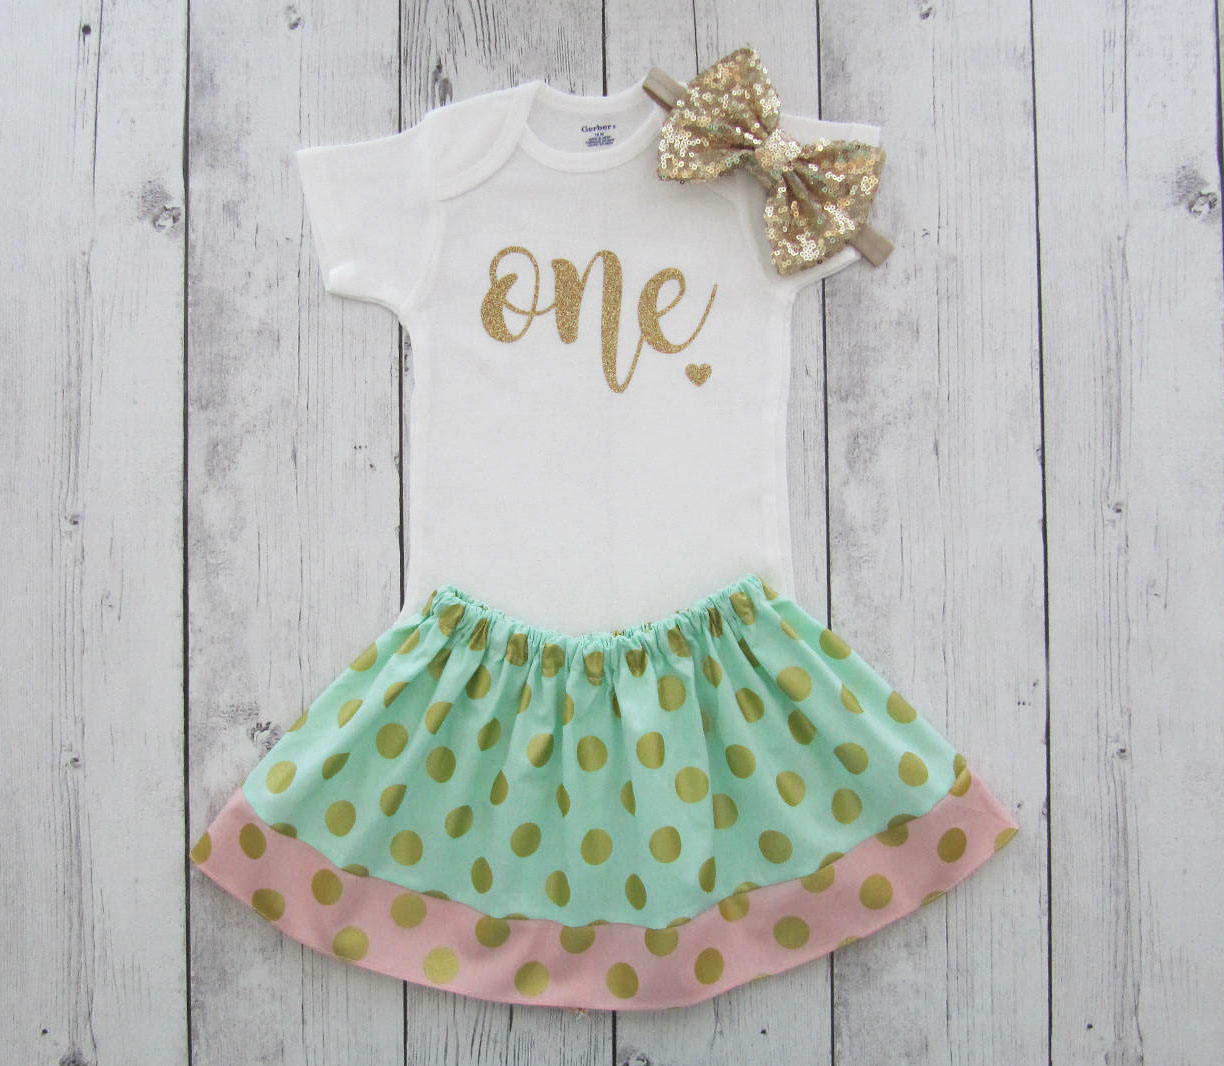 First Birthday Outfit in mint pink and gold polka dot skirt - themeless birthday outfit, one year old, simple first birthday outfit girl